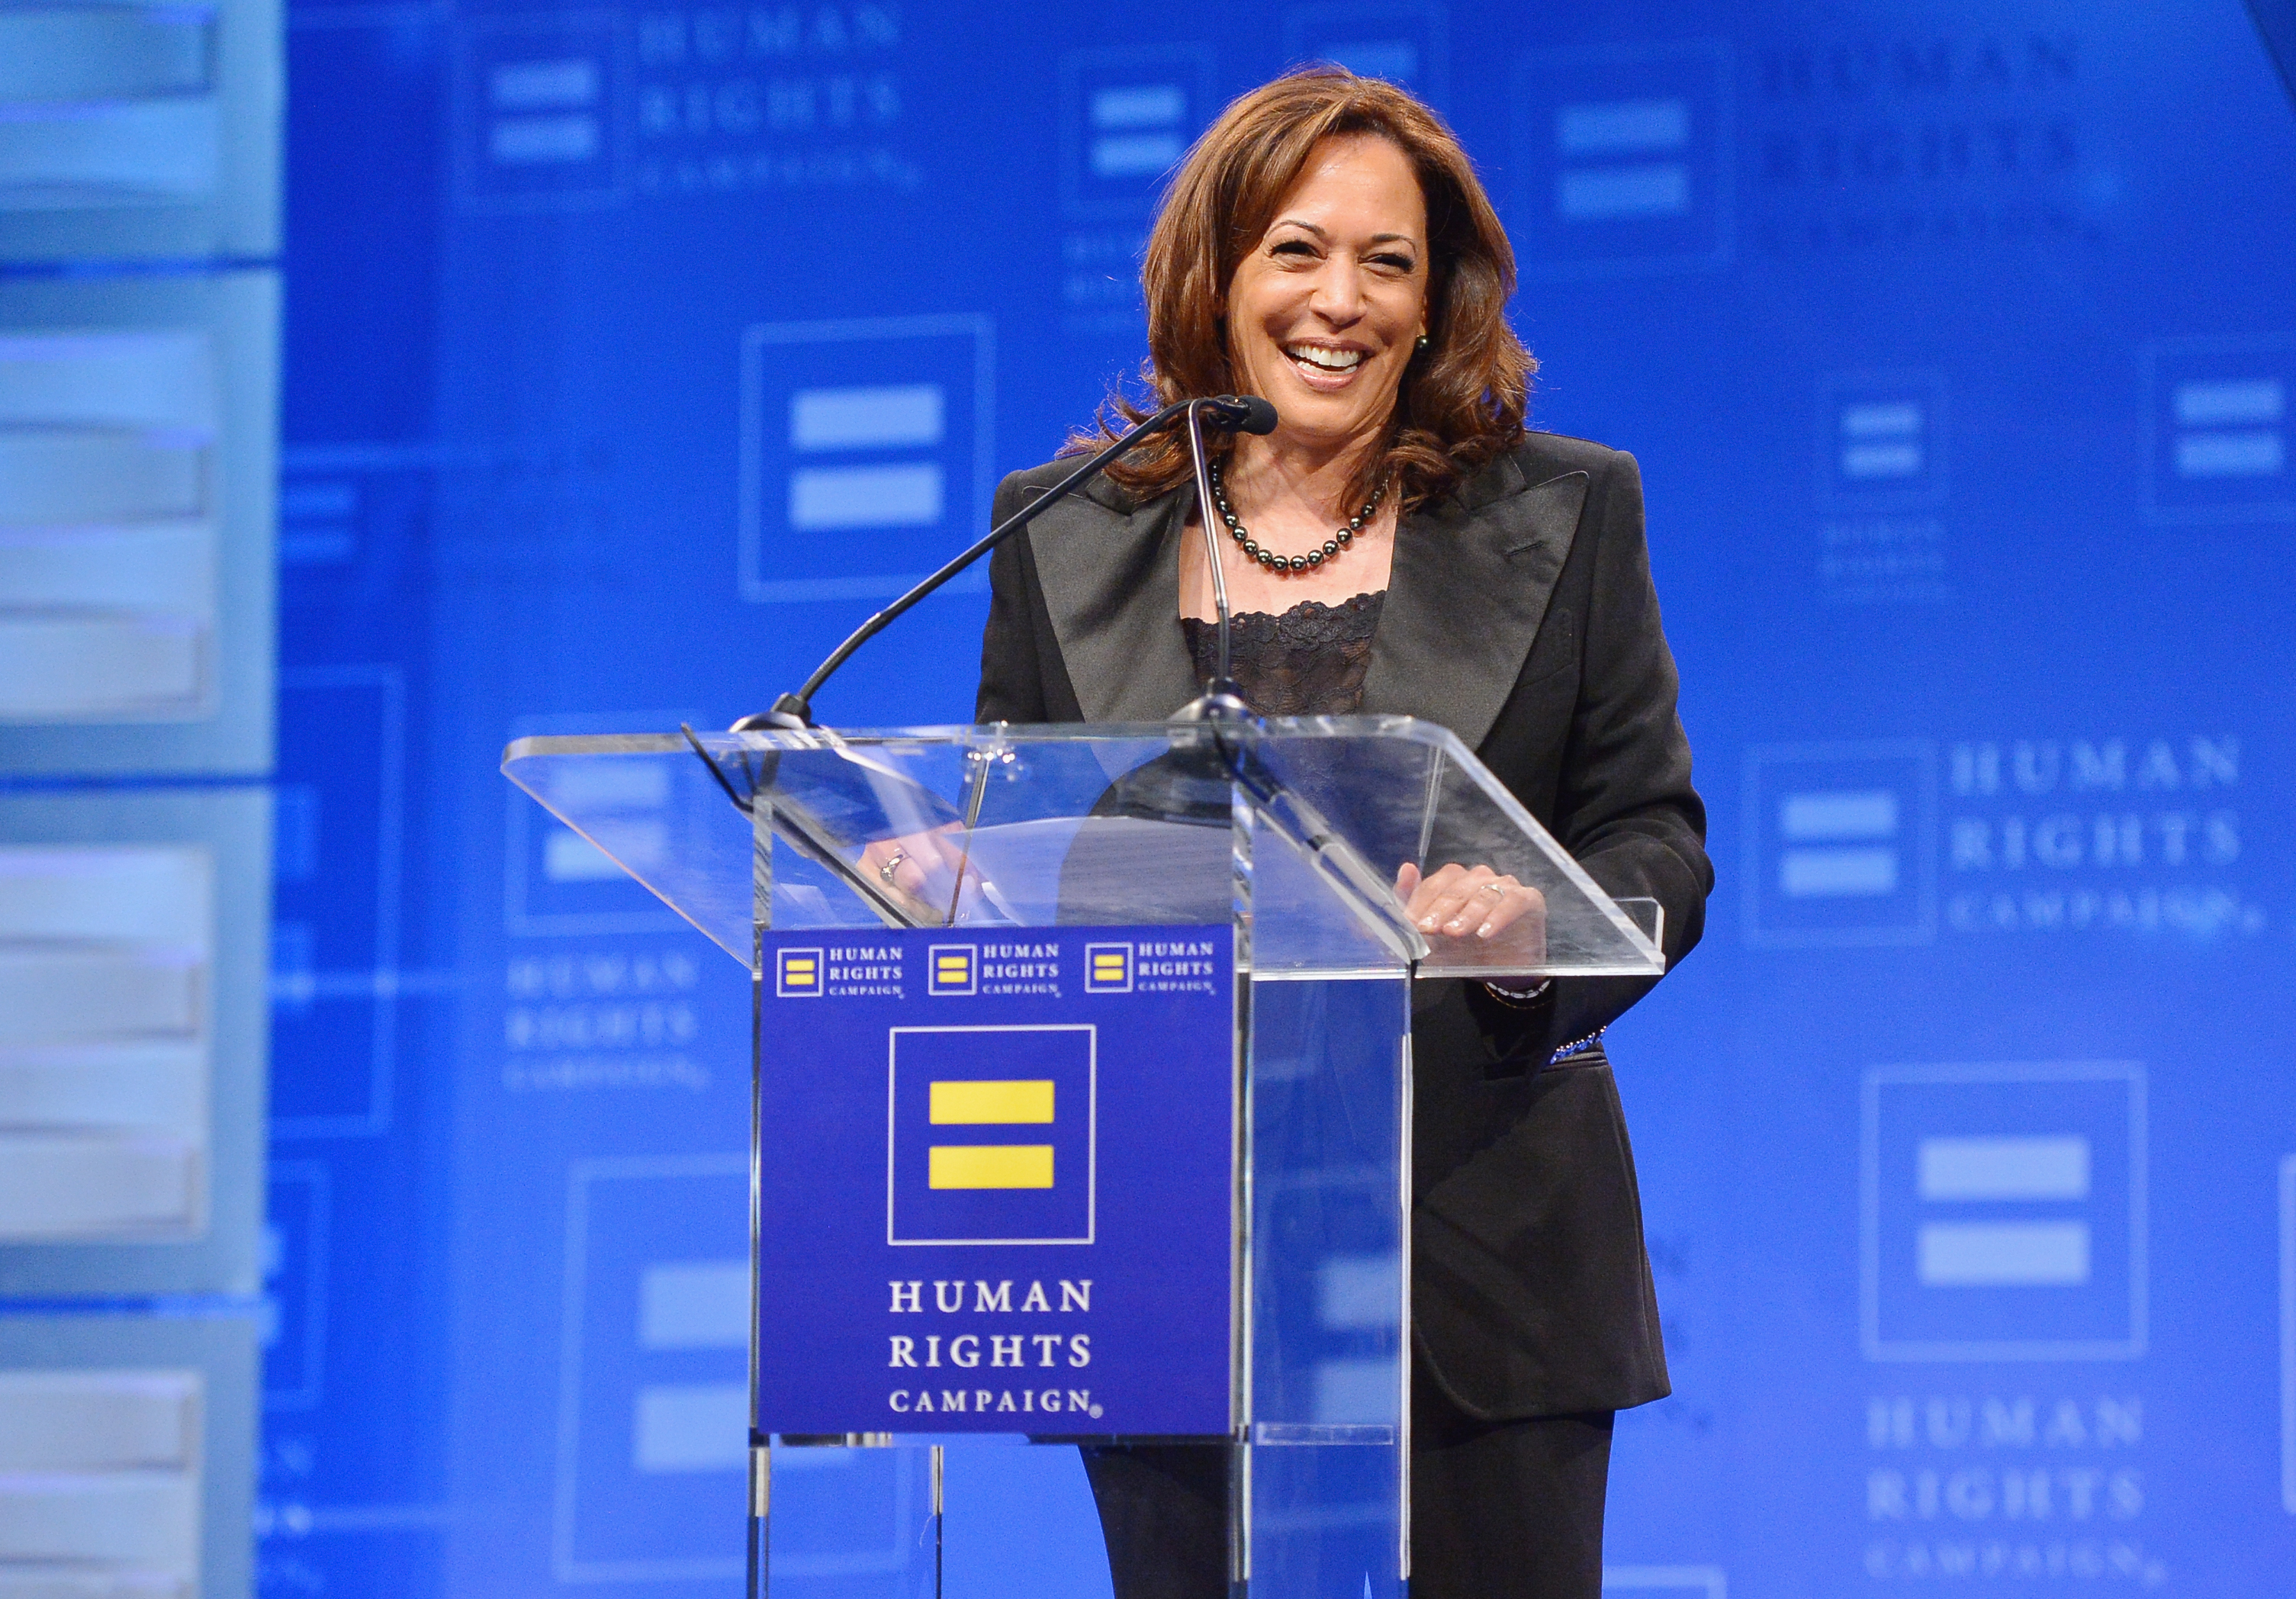 Senator Kamala Harris speaks onstage at The Human Rights Campaign 2019 Los Angeles Gala Dinner at JW Marriott Los Angeles at L.A. LIVE on March 30, 2019 in Los Angeles, California.